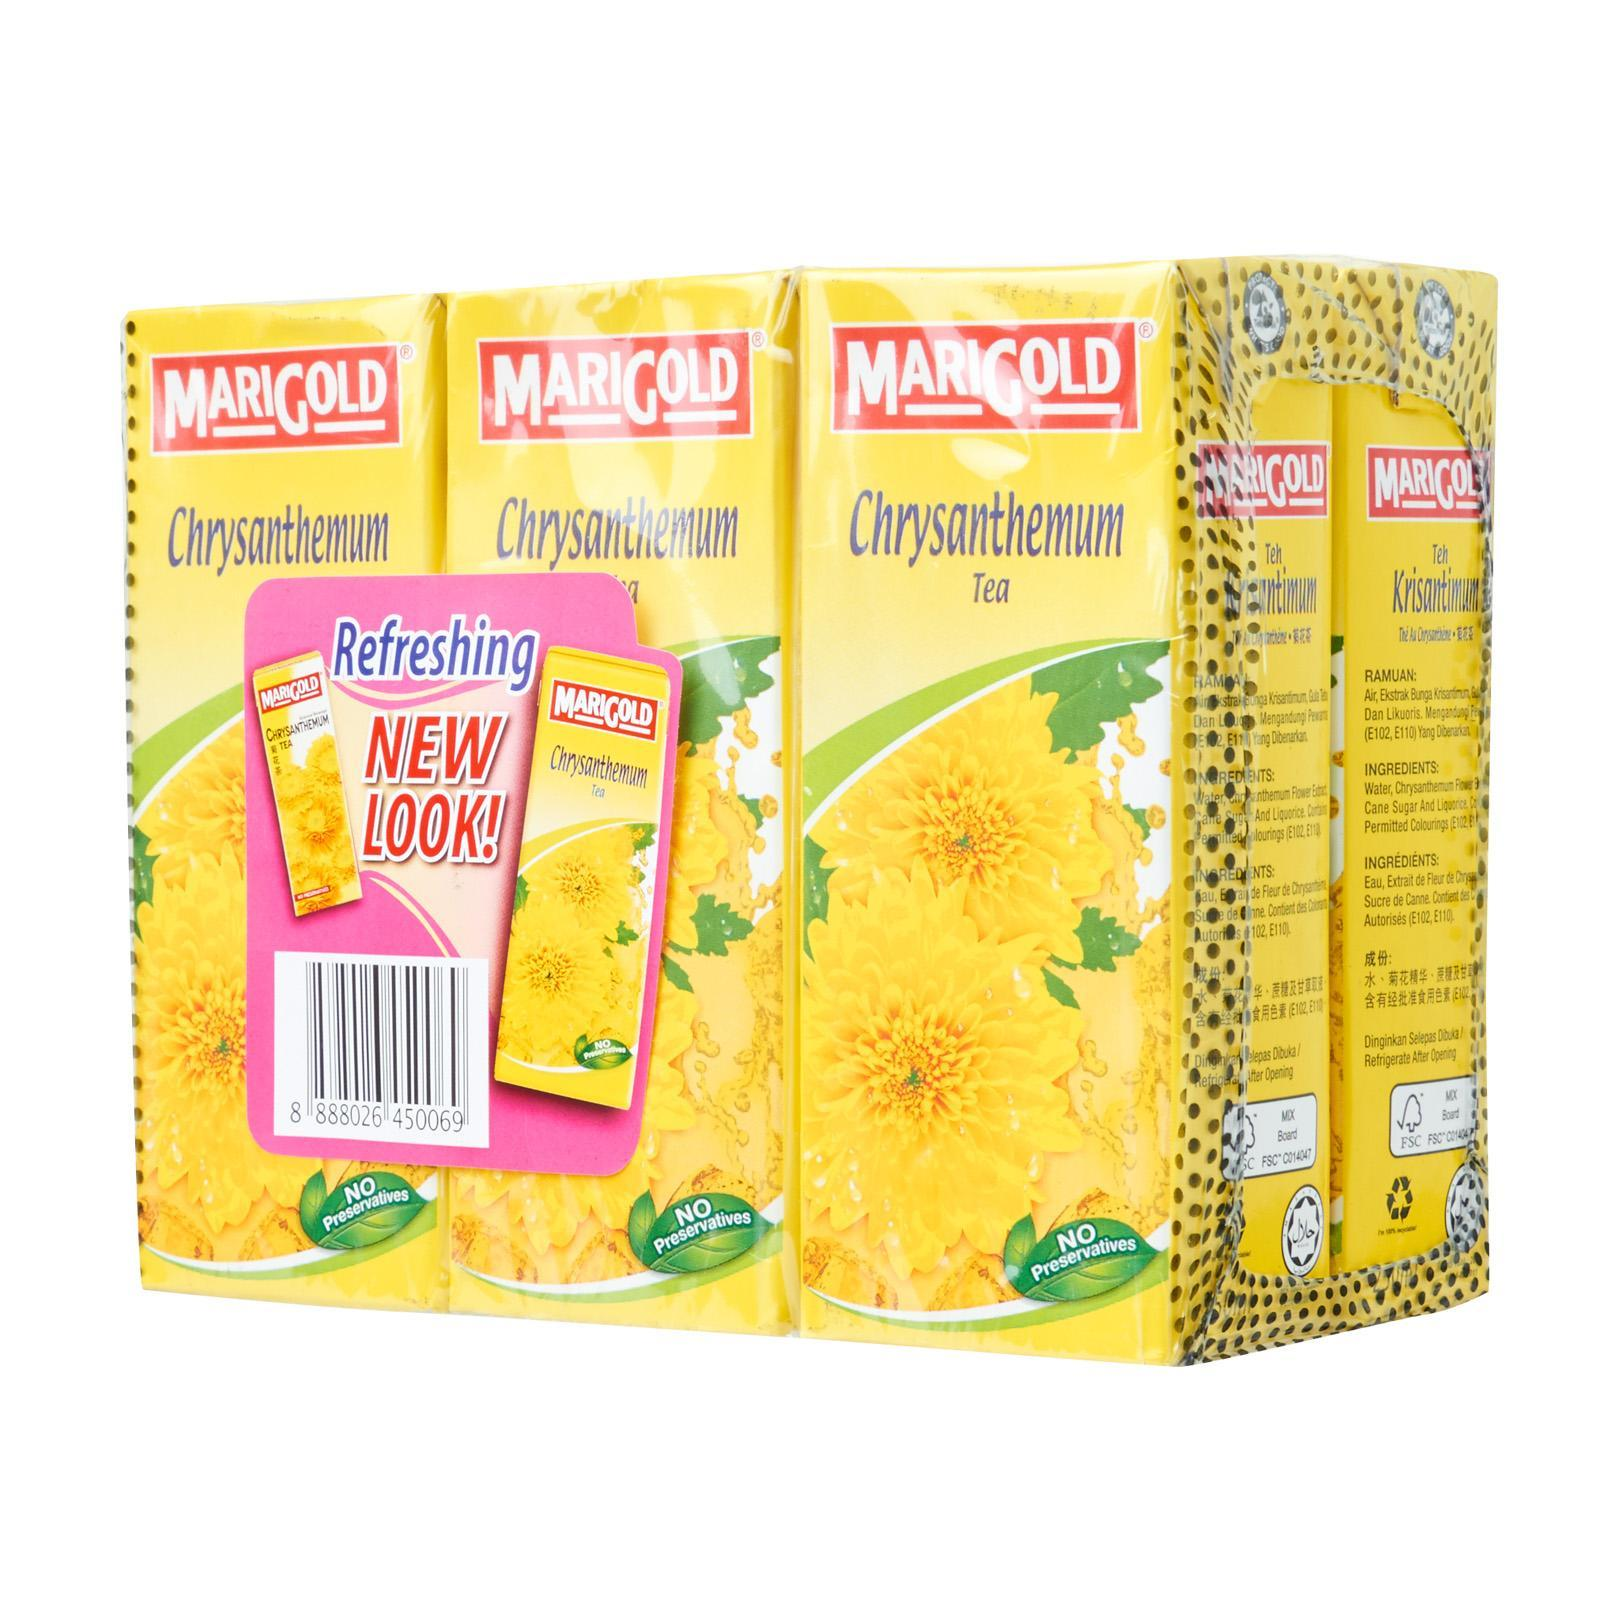 MARIGOLD Chrysanthemum Tea